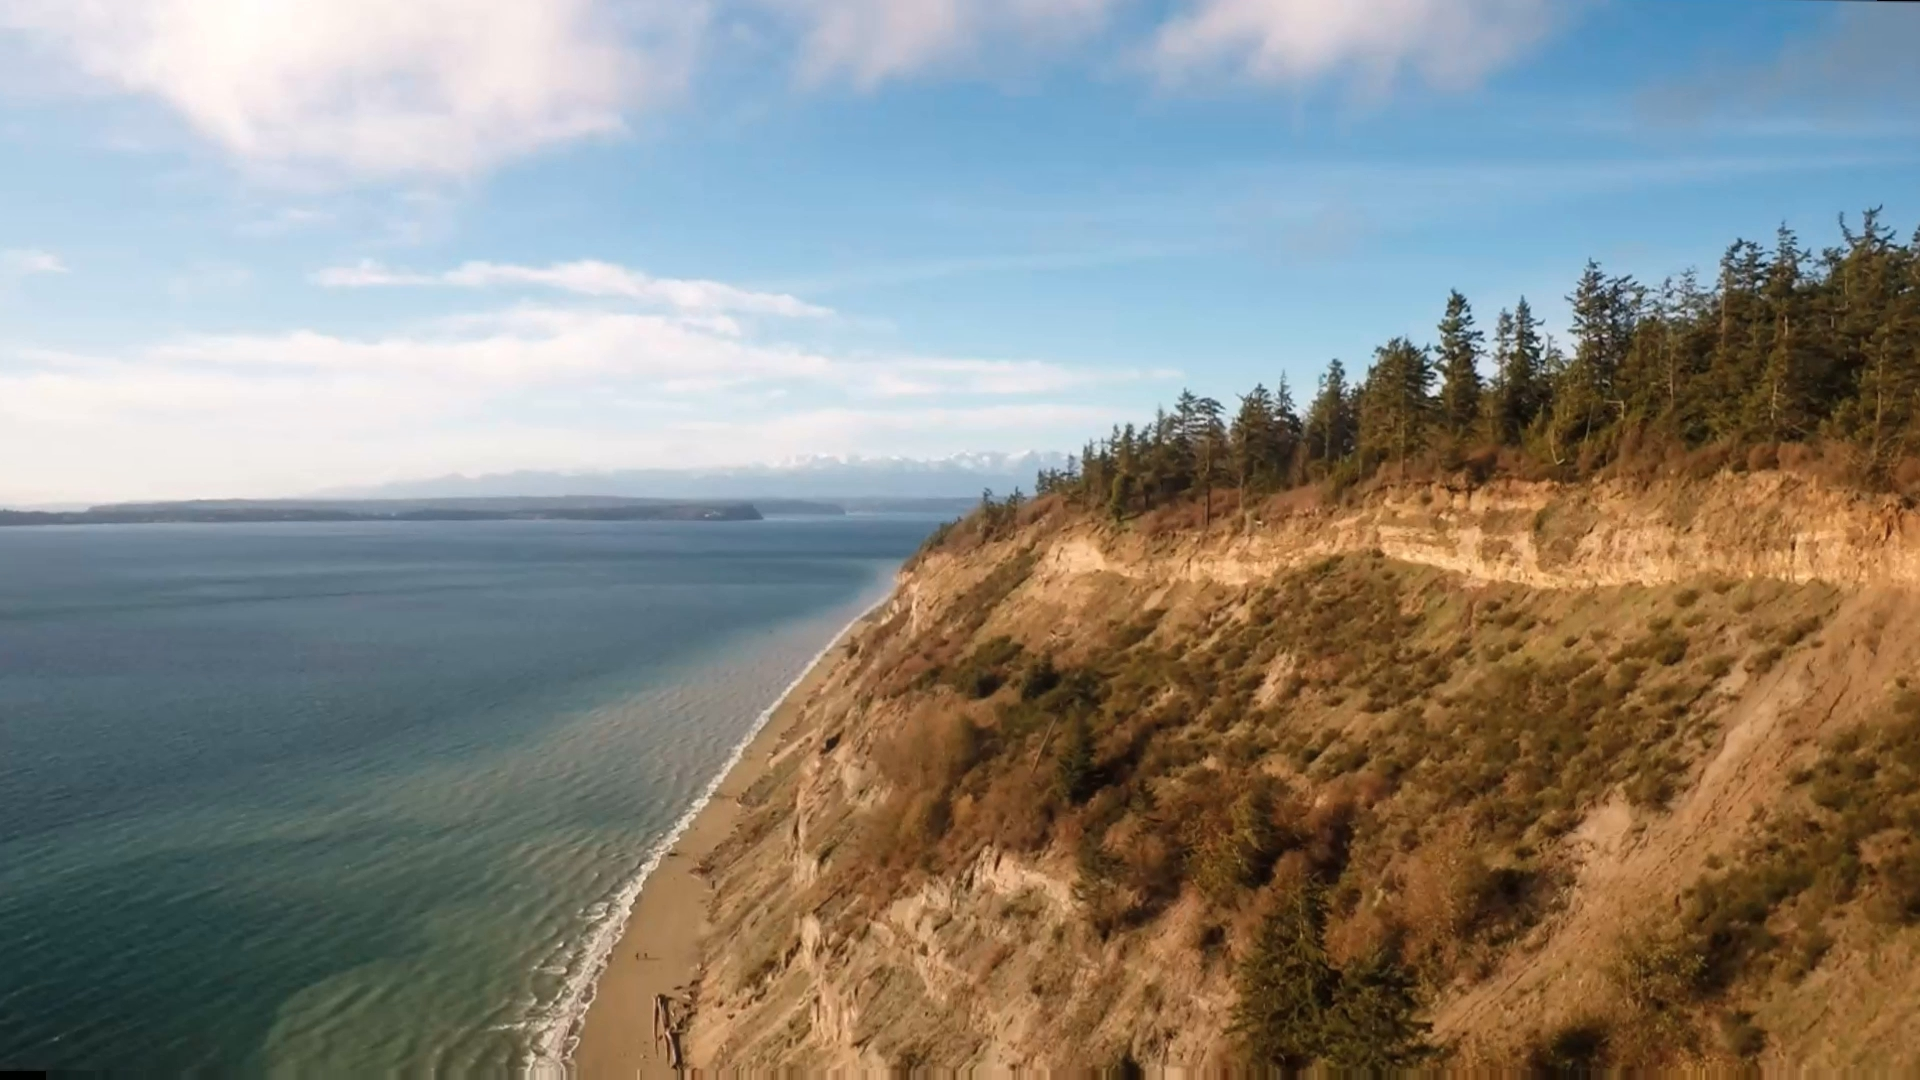 Double Bluff and Olympic Mountains